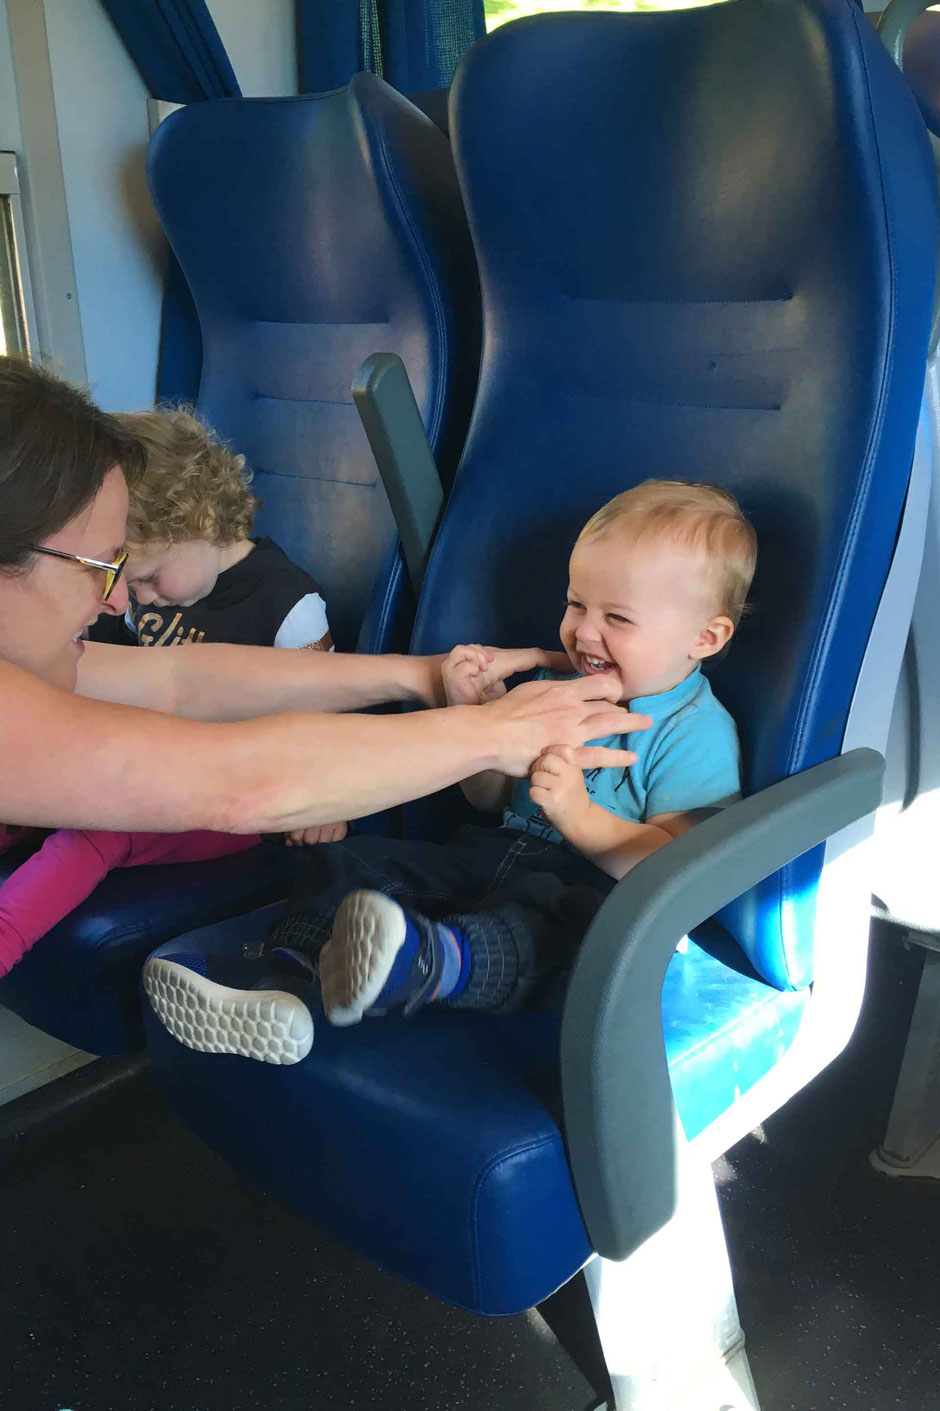 Keeping toddlers entertained on the train - Piombino to Livorno, Italy